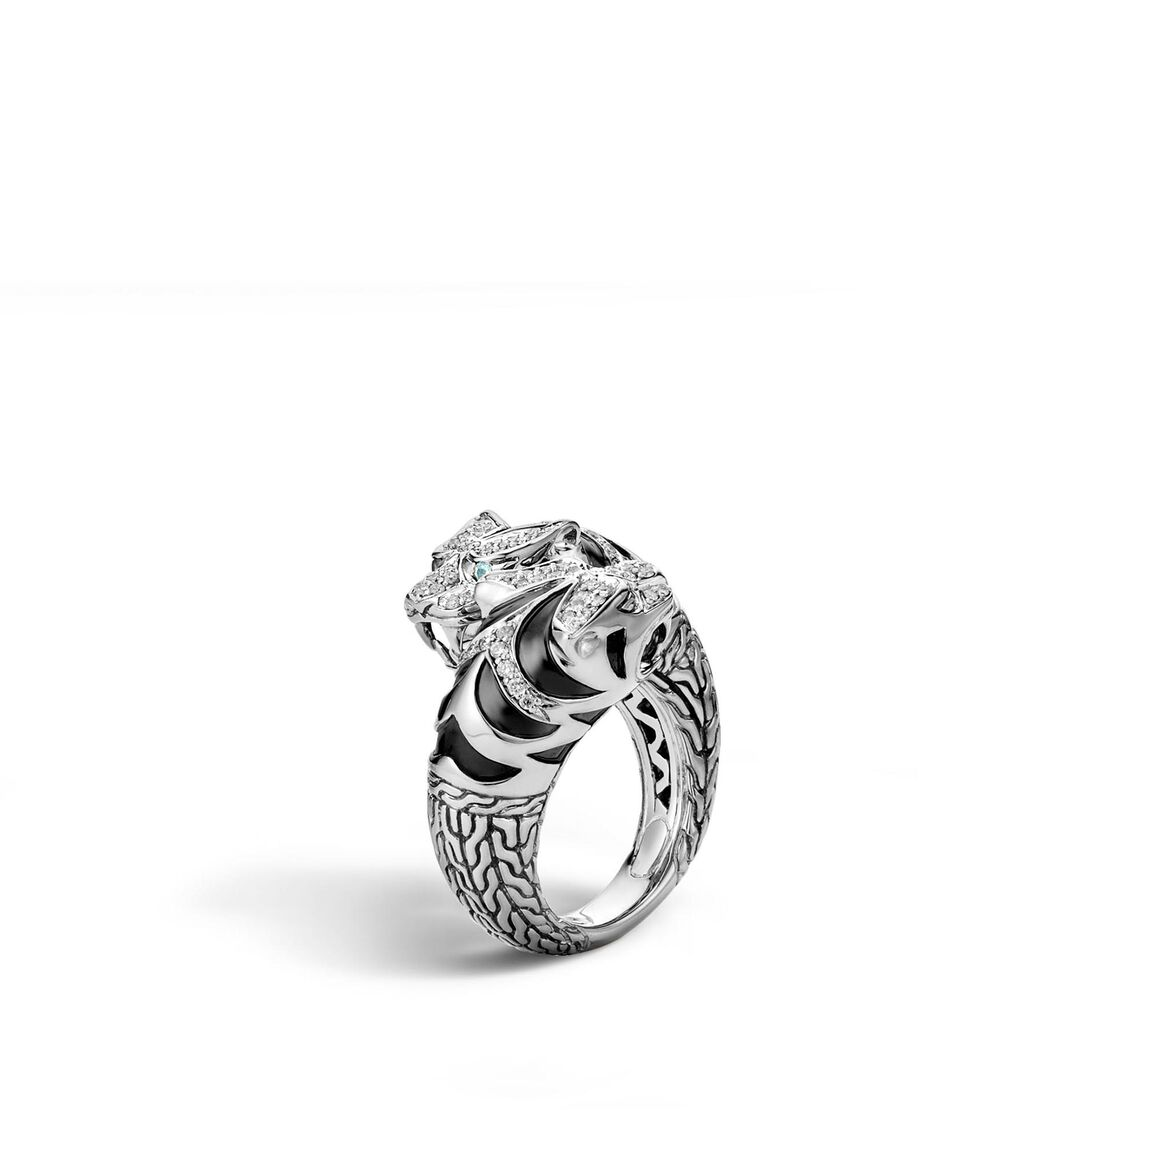 Legends Macan Double Head Bypass Ring, Silver with Diamonds